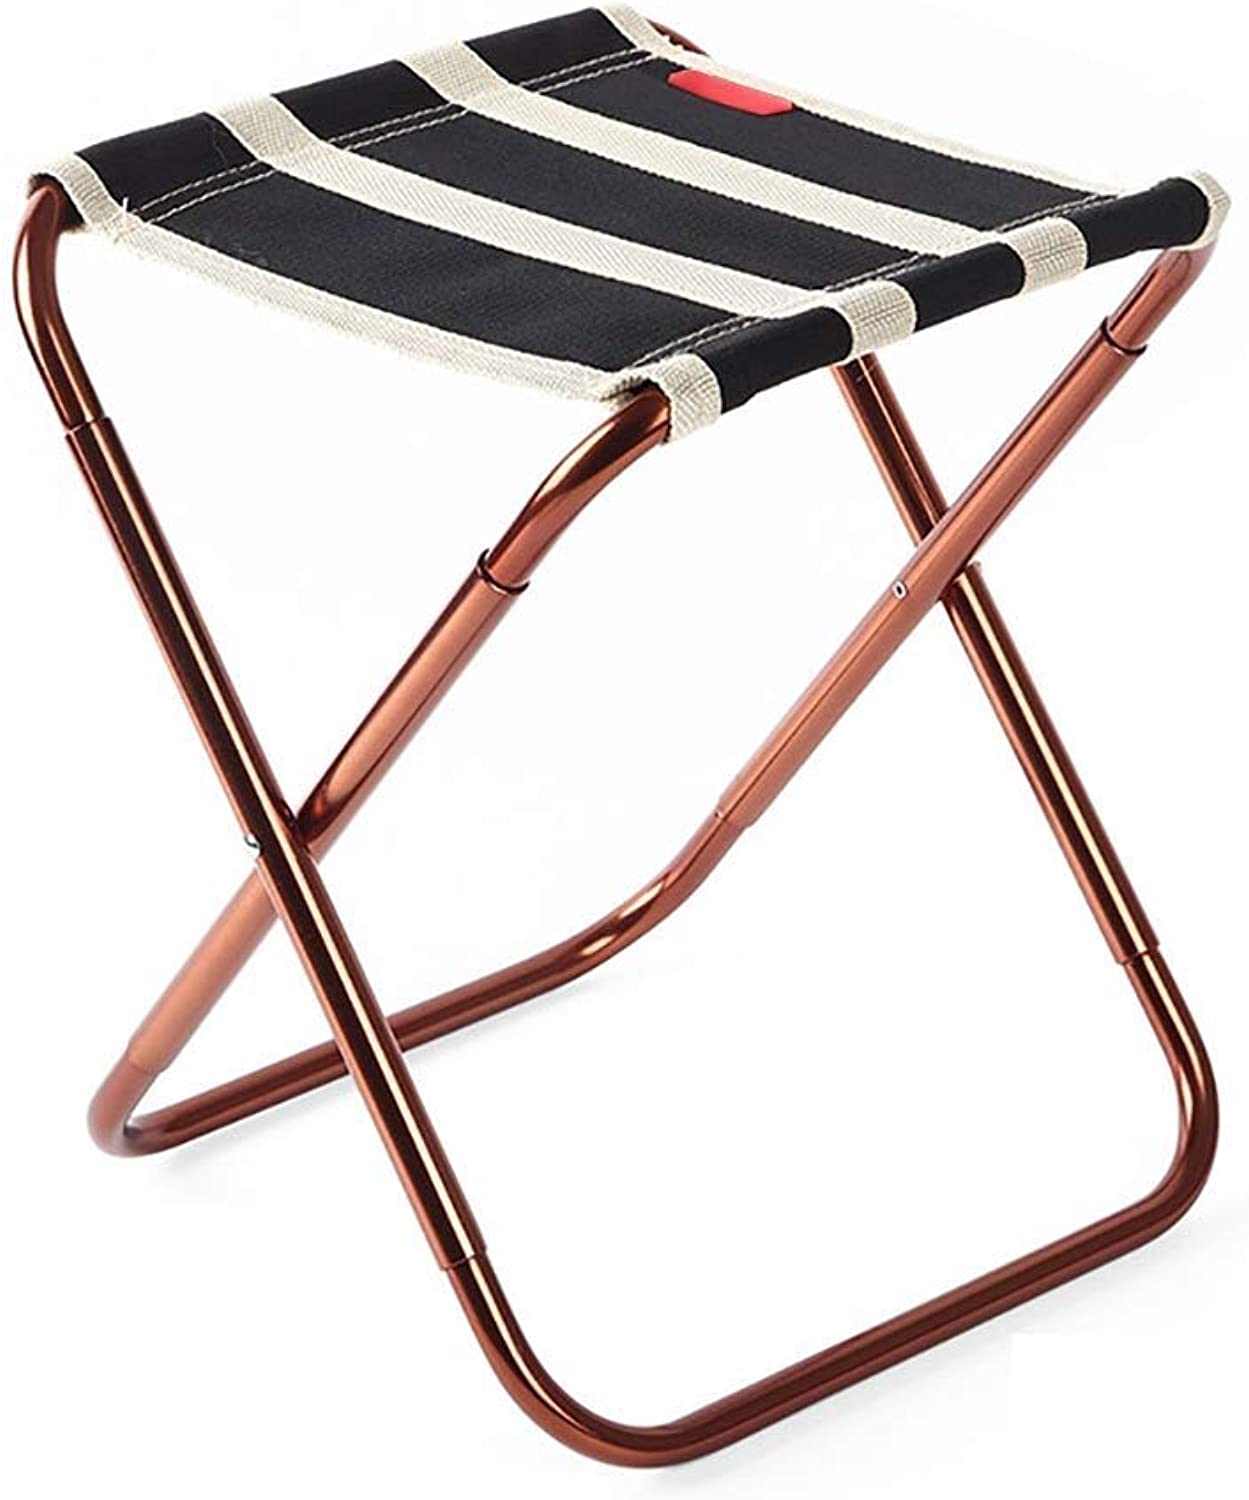 Folding Stool Portable Folding Stool Camping Stool for Outdoor, Camping, BBQ, Backpacking, Beach Sunbath, Travel, Picnic (color Black) GYJ